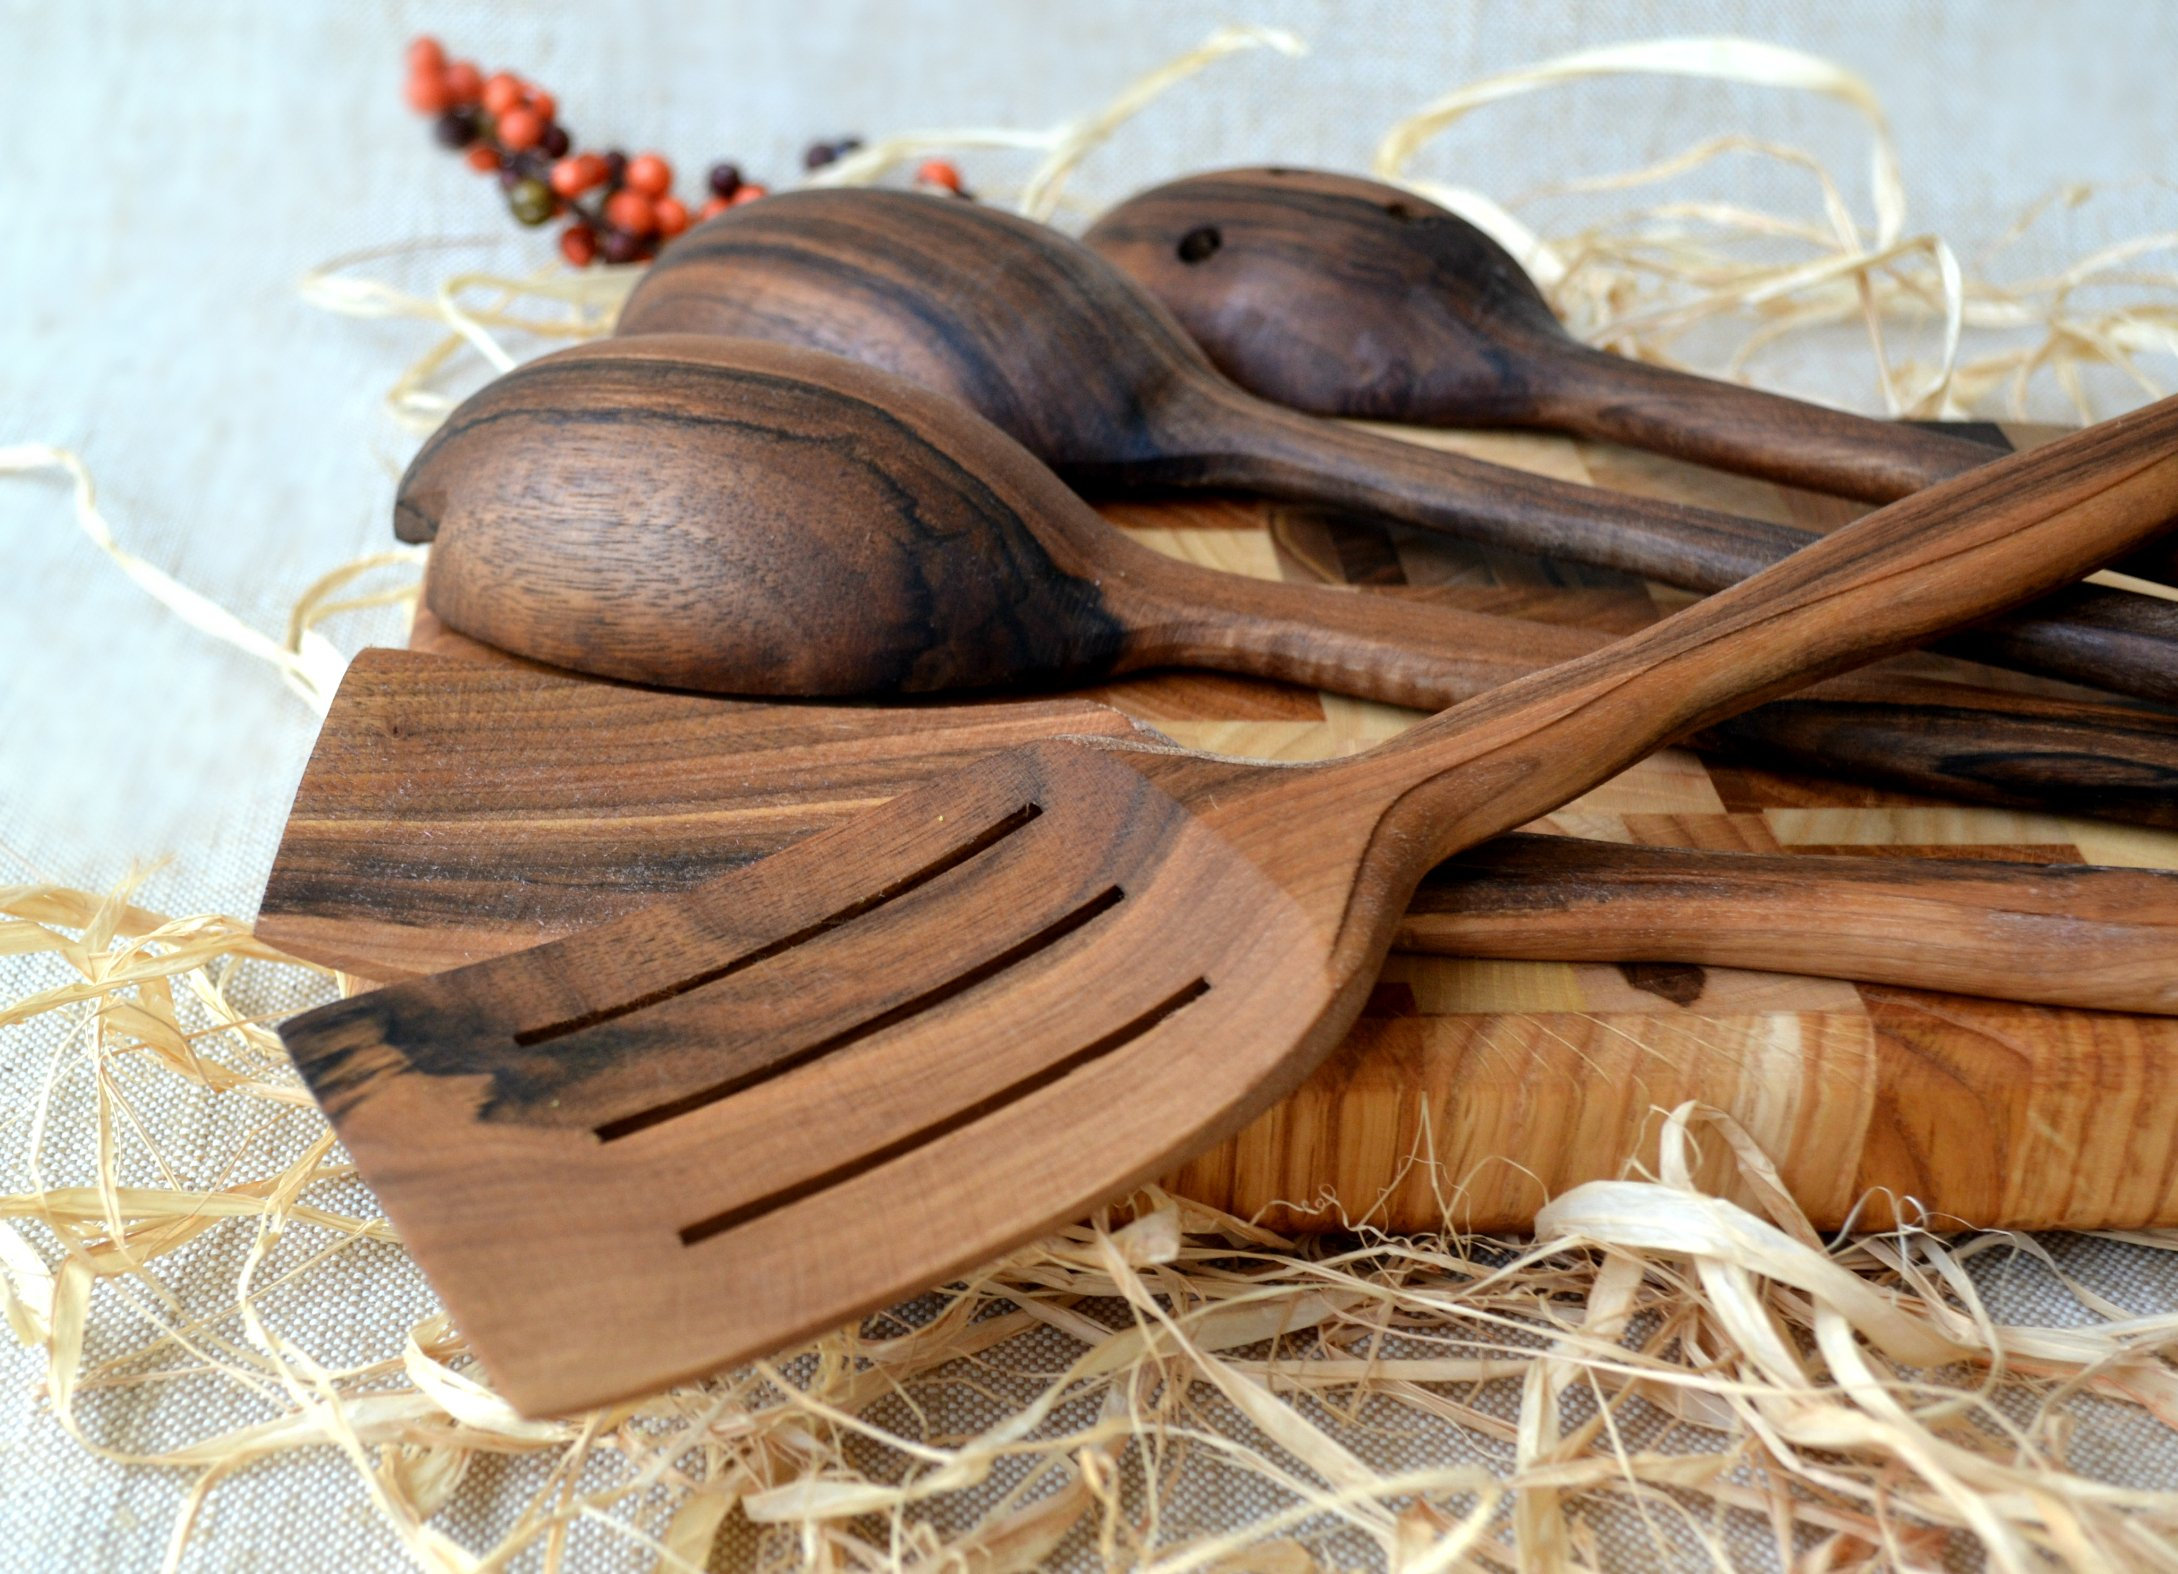 MyFancyCraft Handmade Utensil Set. Wooden Cute Kitchen Utensils Set 14''/35 cm. Walnut Wood Kitchen Supplies & Utensils Big Set of 5 by MyFancyCraft (Image #9)